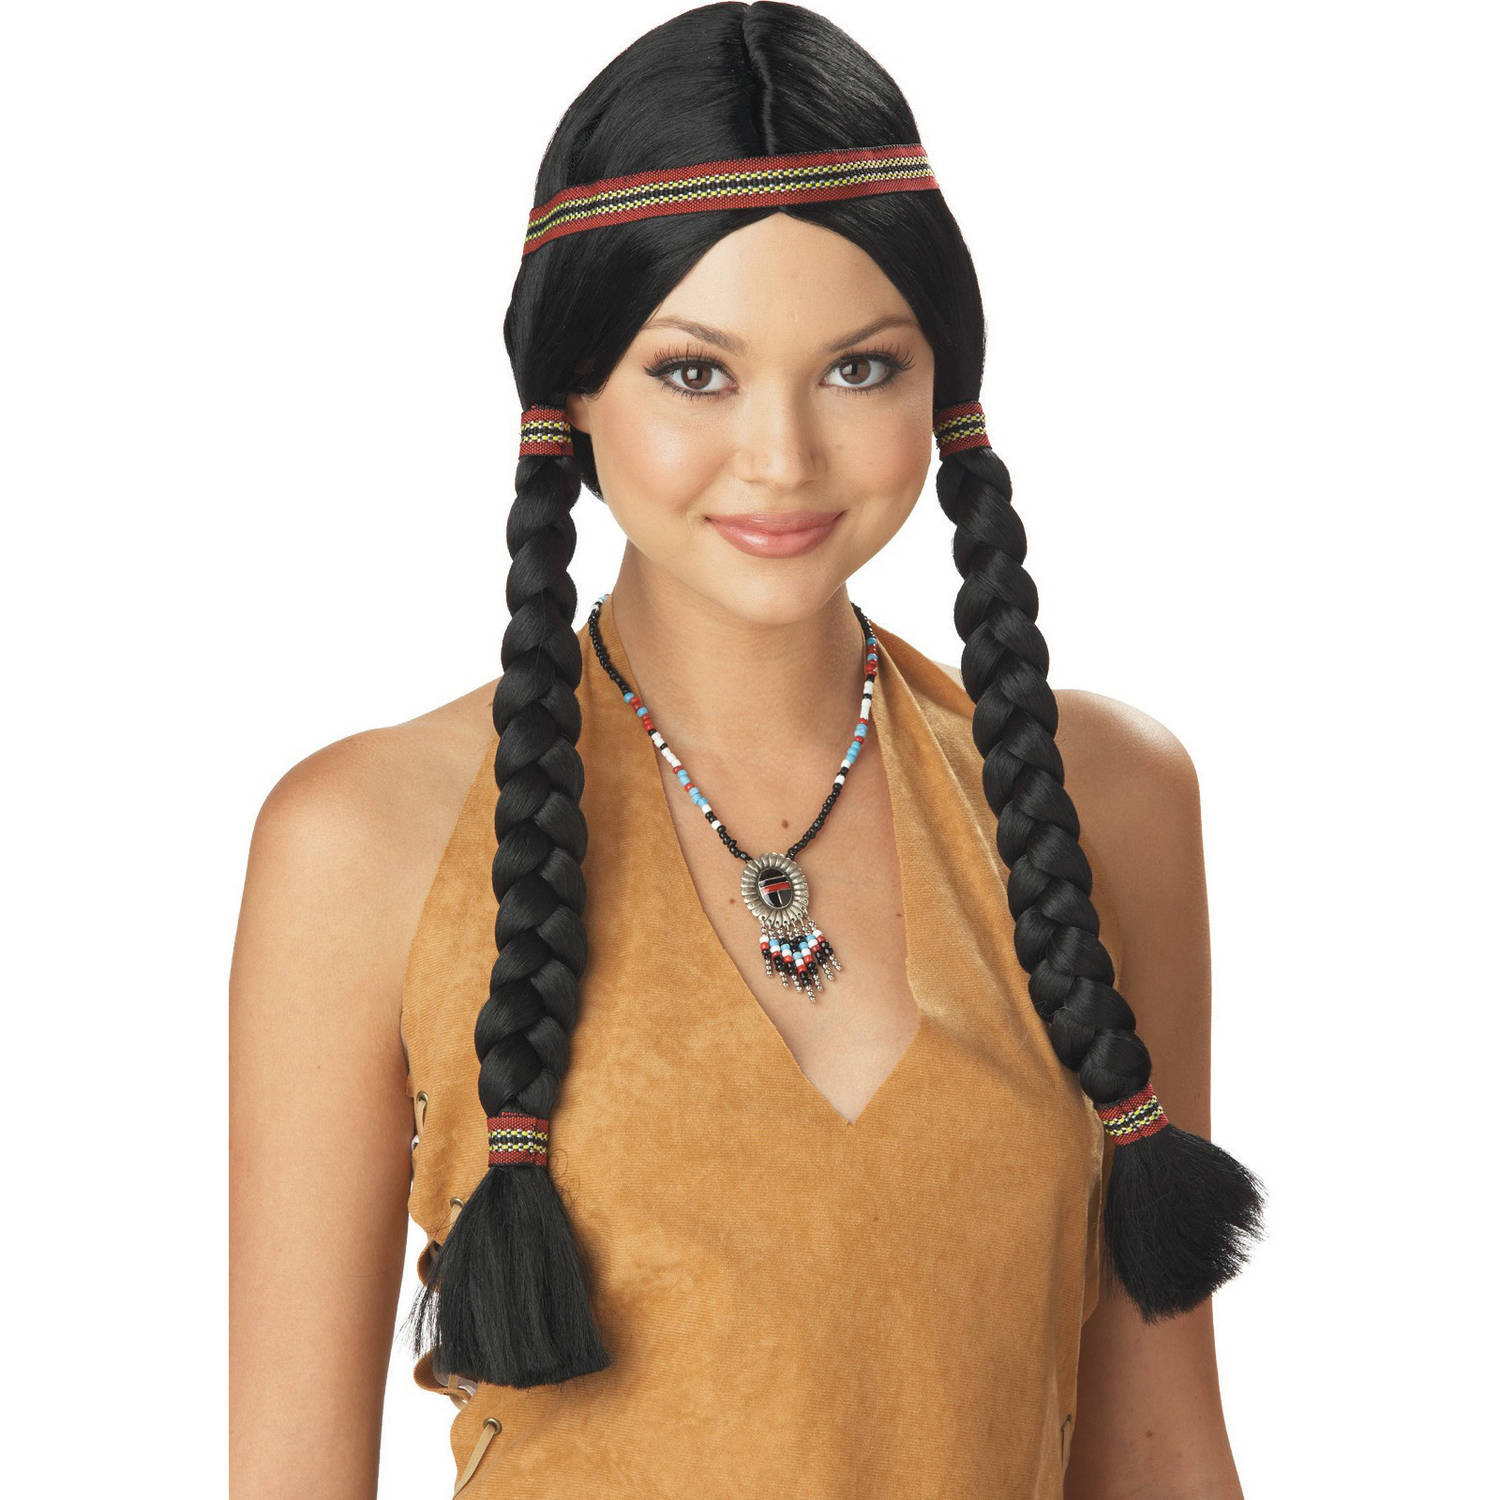 Indian Maiden Black Wig Halloween Accessory